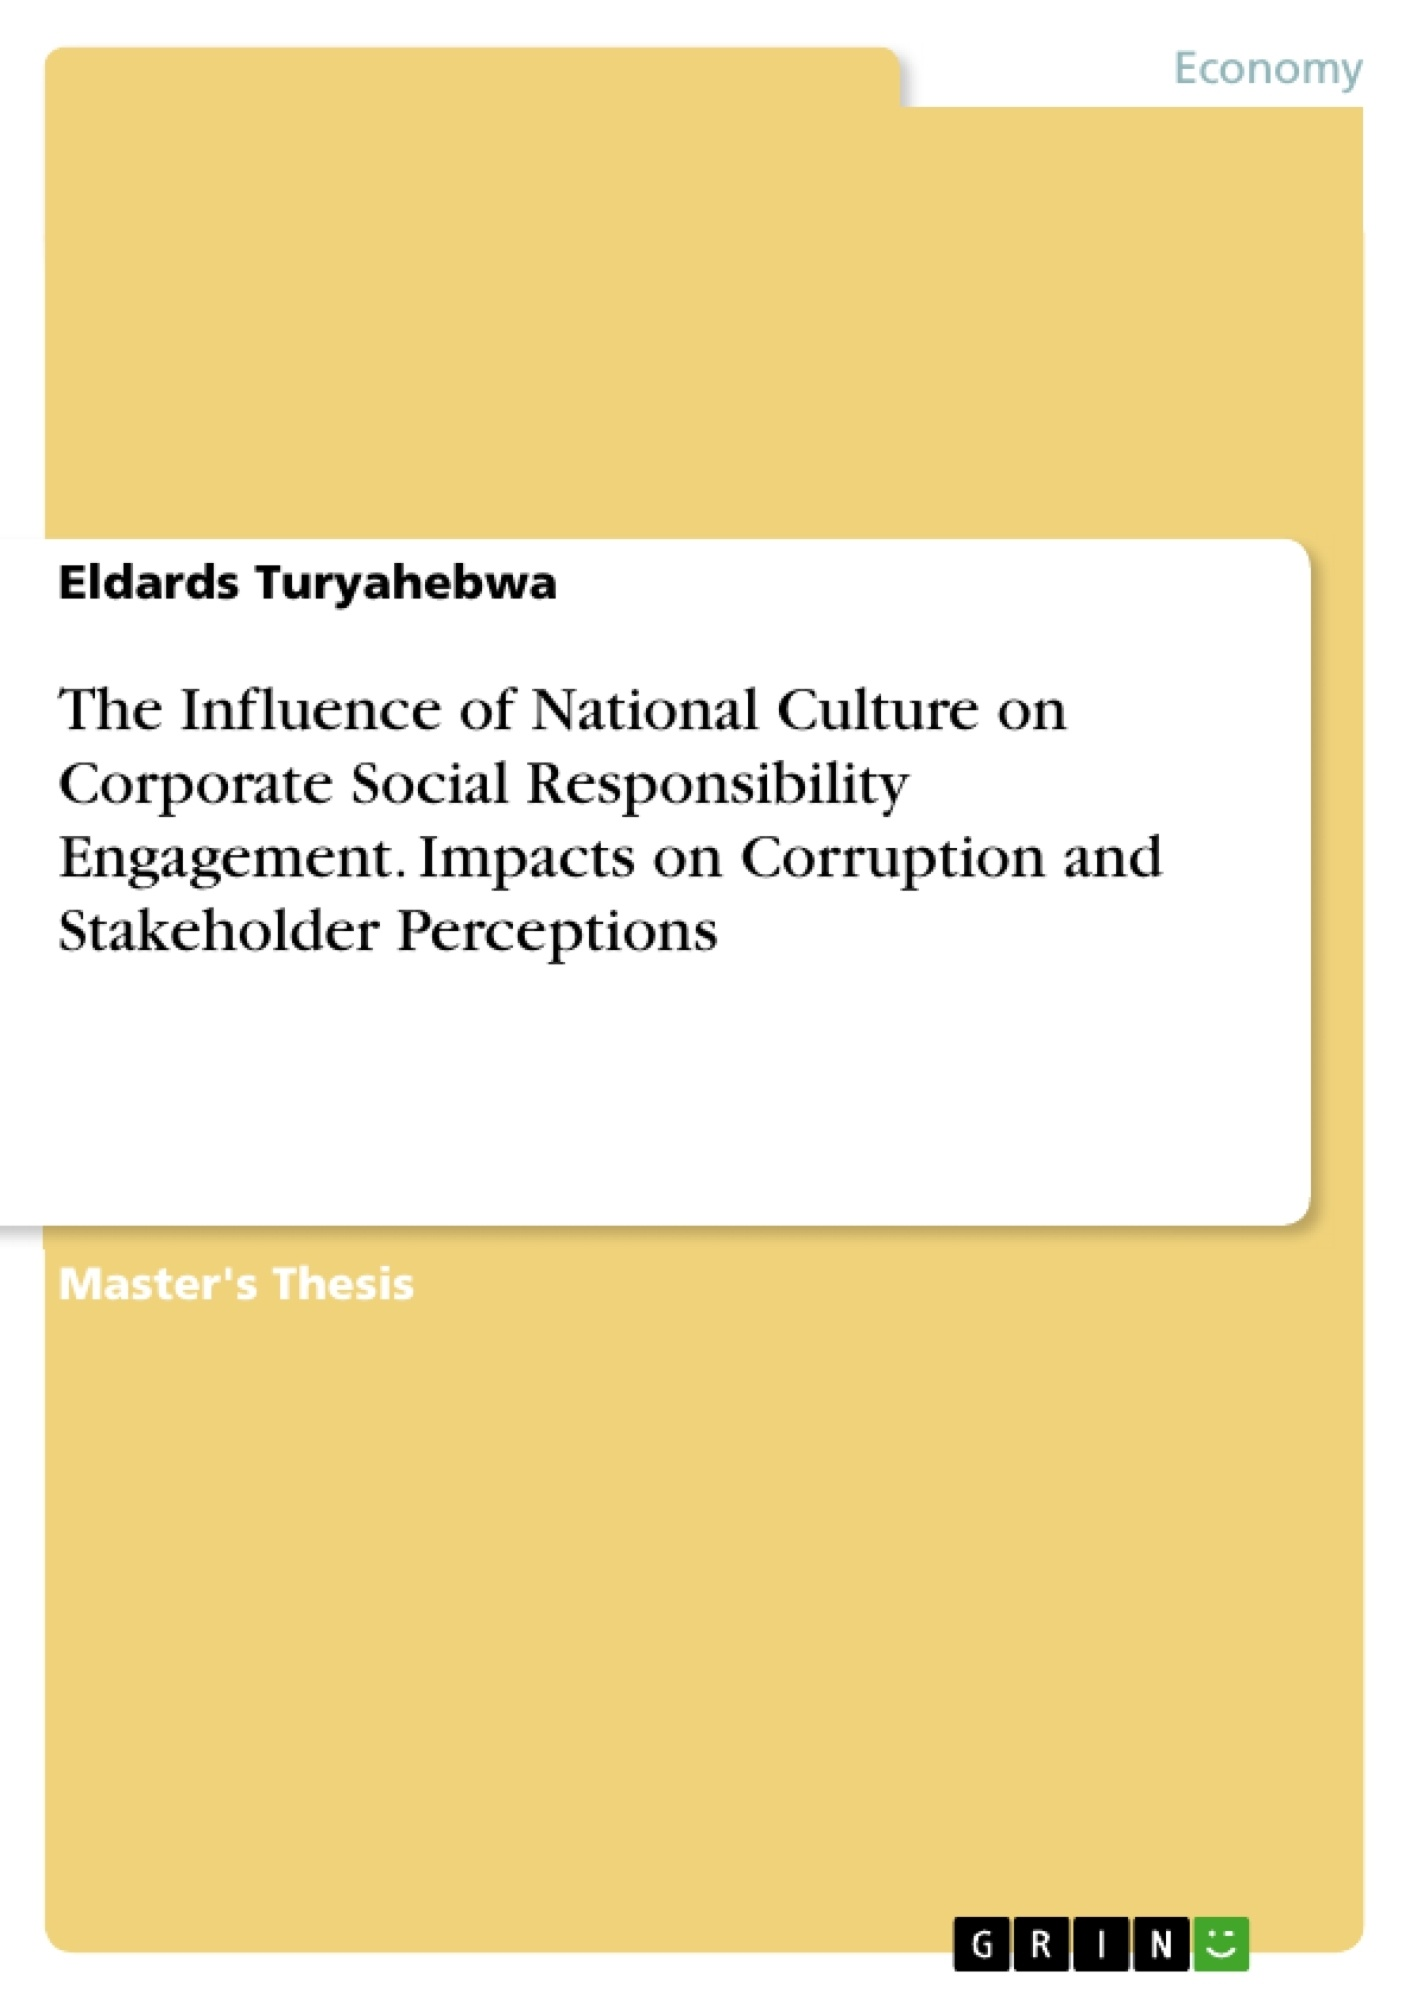 Title: The Influence of National Culture on Corporate Social Responsibility Engagement. Impacts on Corruption and Stakeholder Perceptions